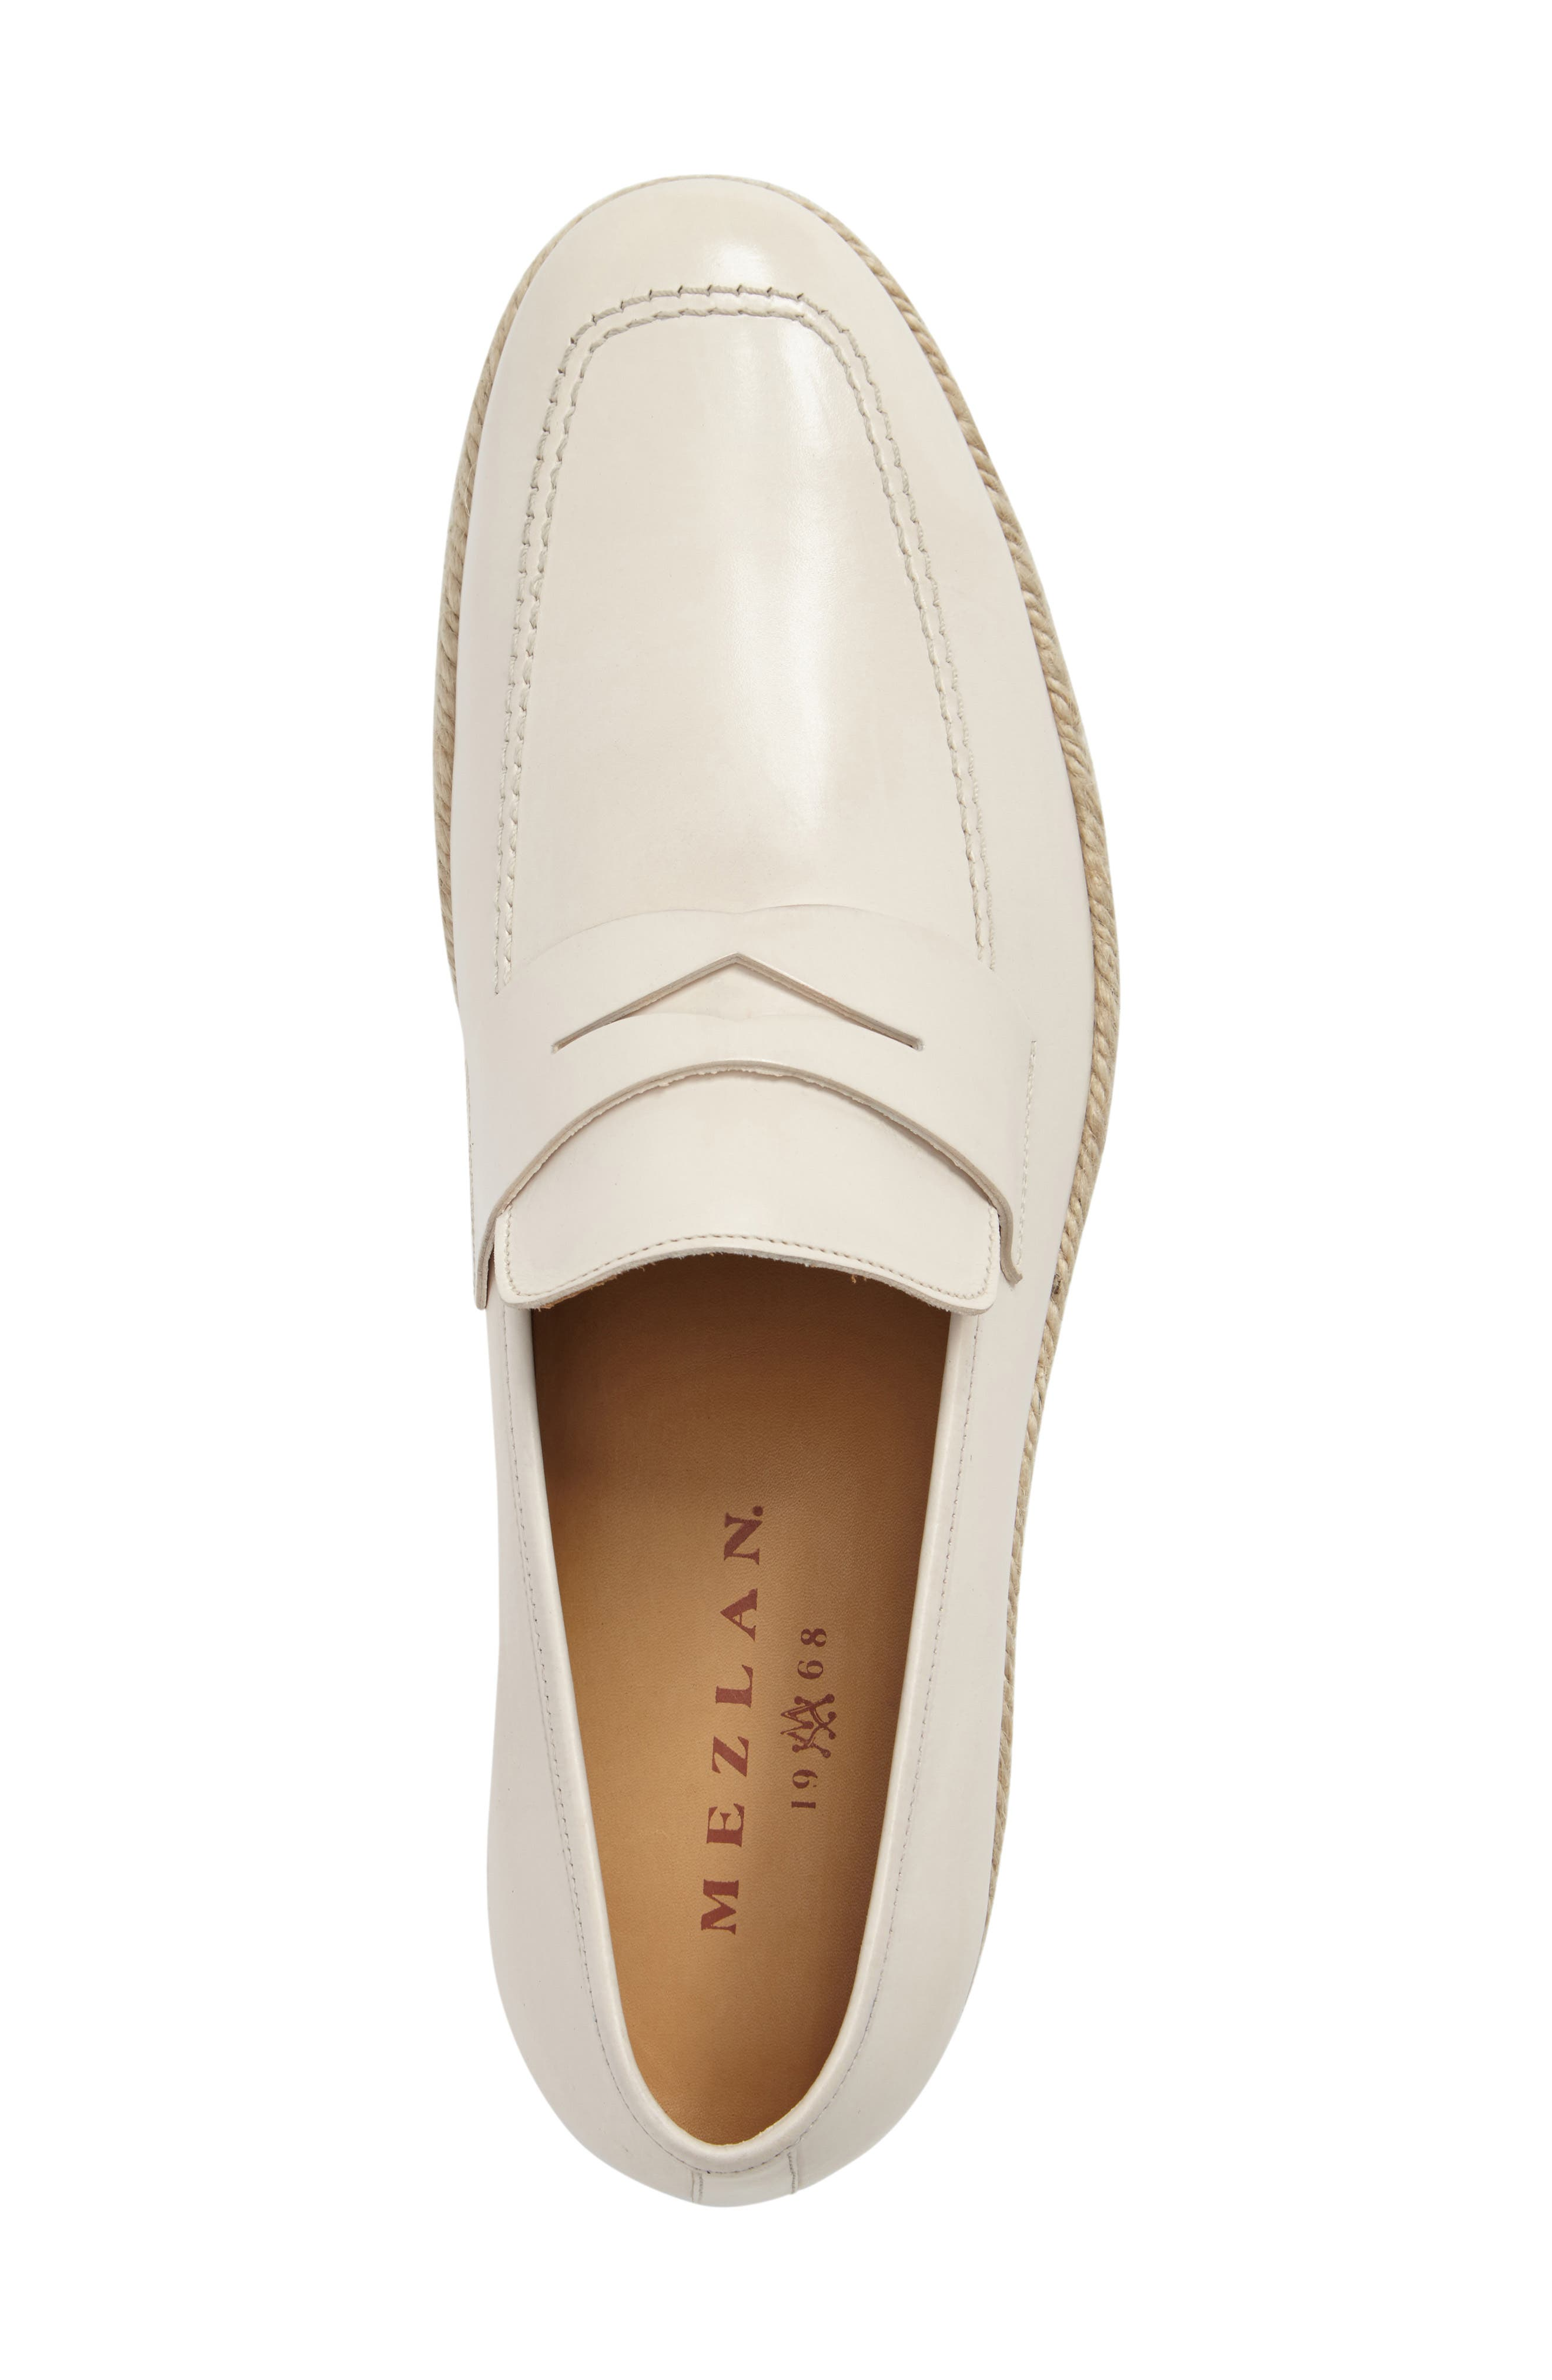 Battani Penny Loafer,                             Alternate thumbnail 5, color,                             BONE LEATHER